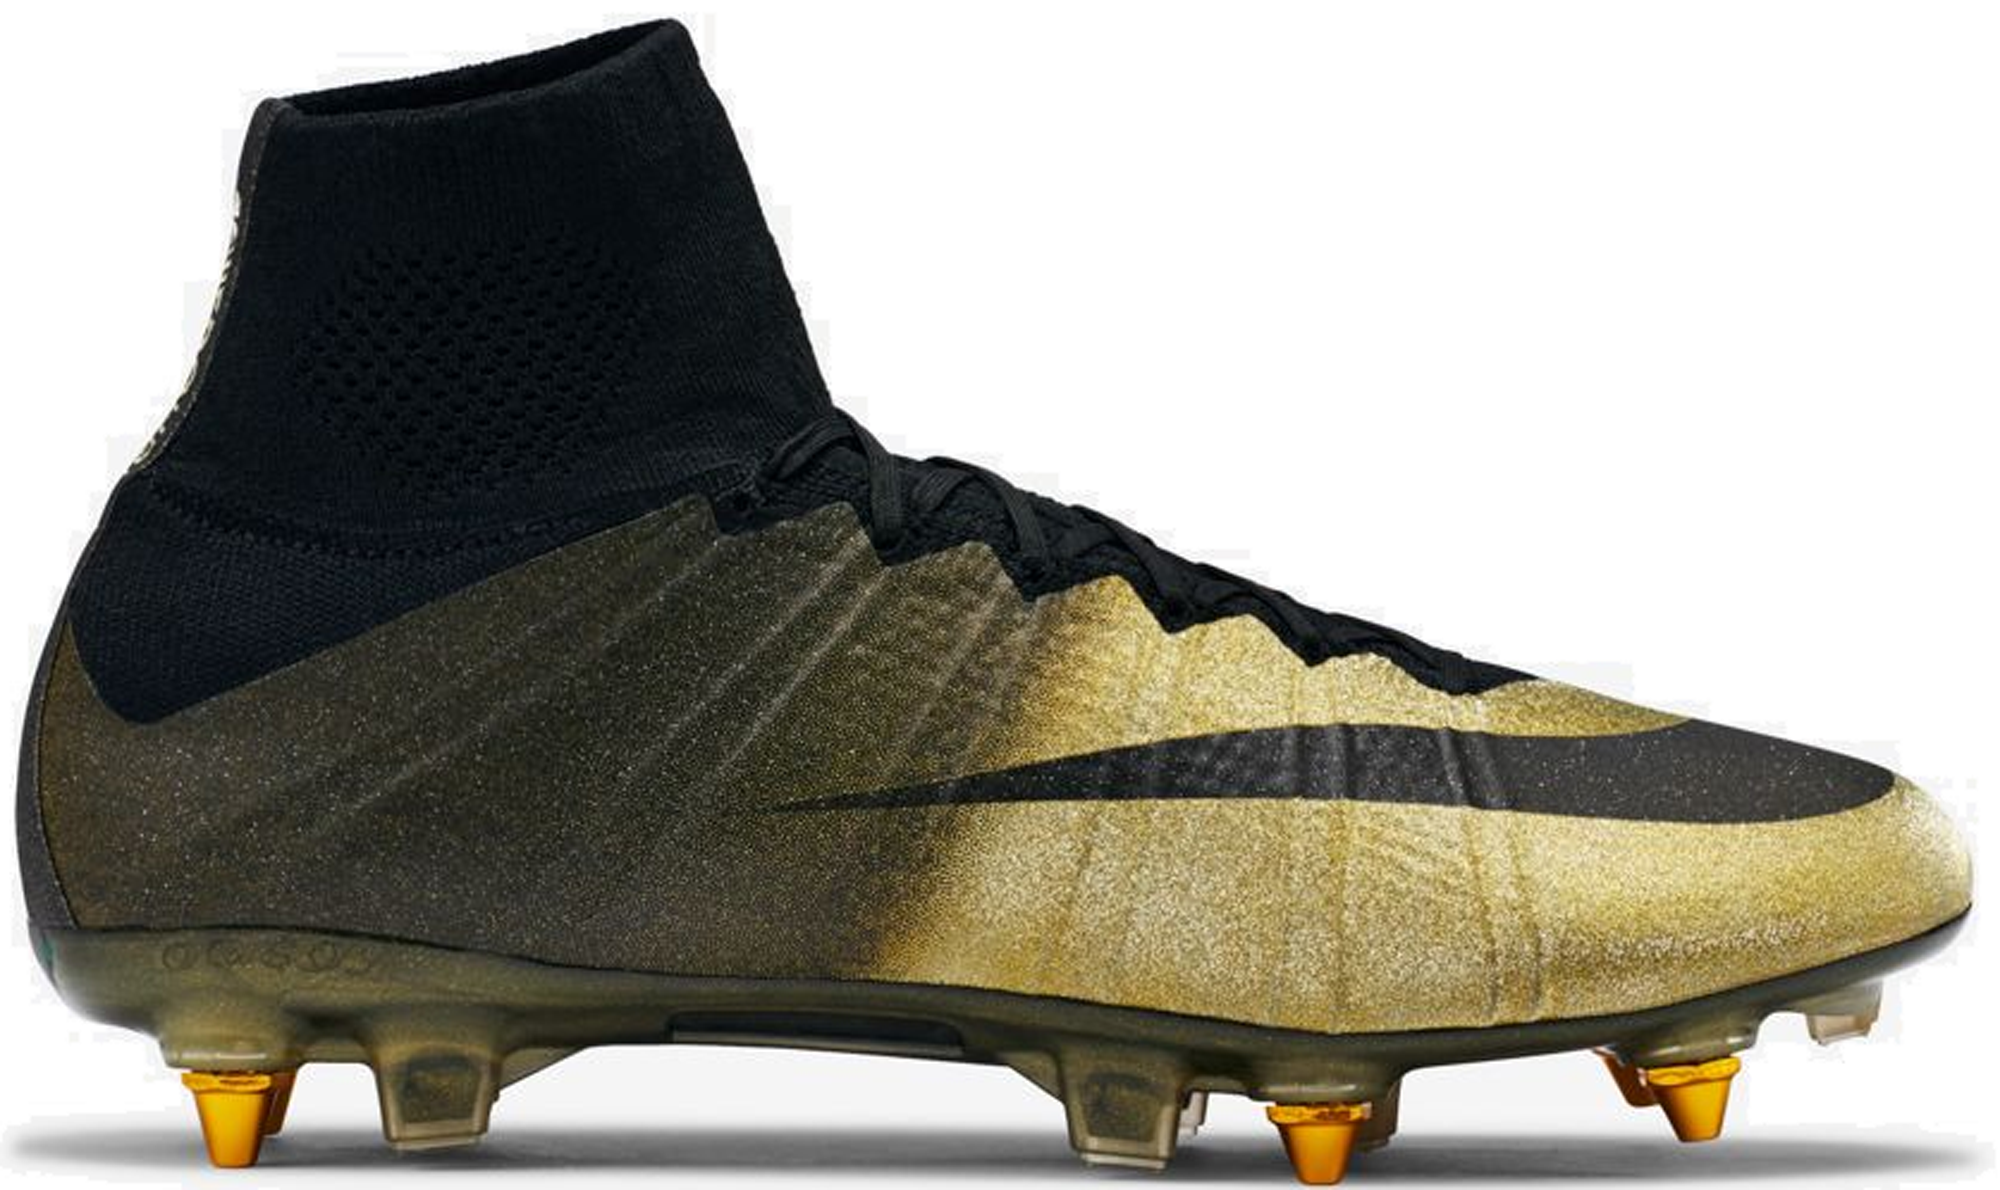 88d1b53dee Cr7 Rare Golden Nike Superfly Size 6 Shopping - Musée des ...